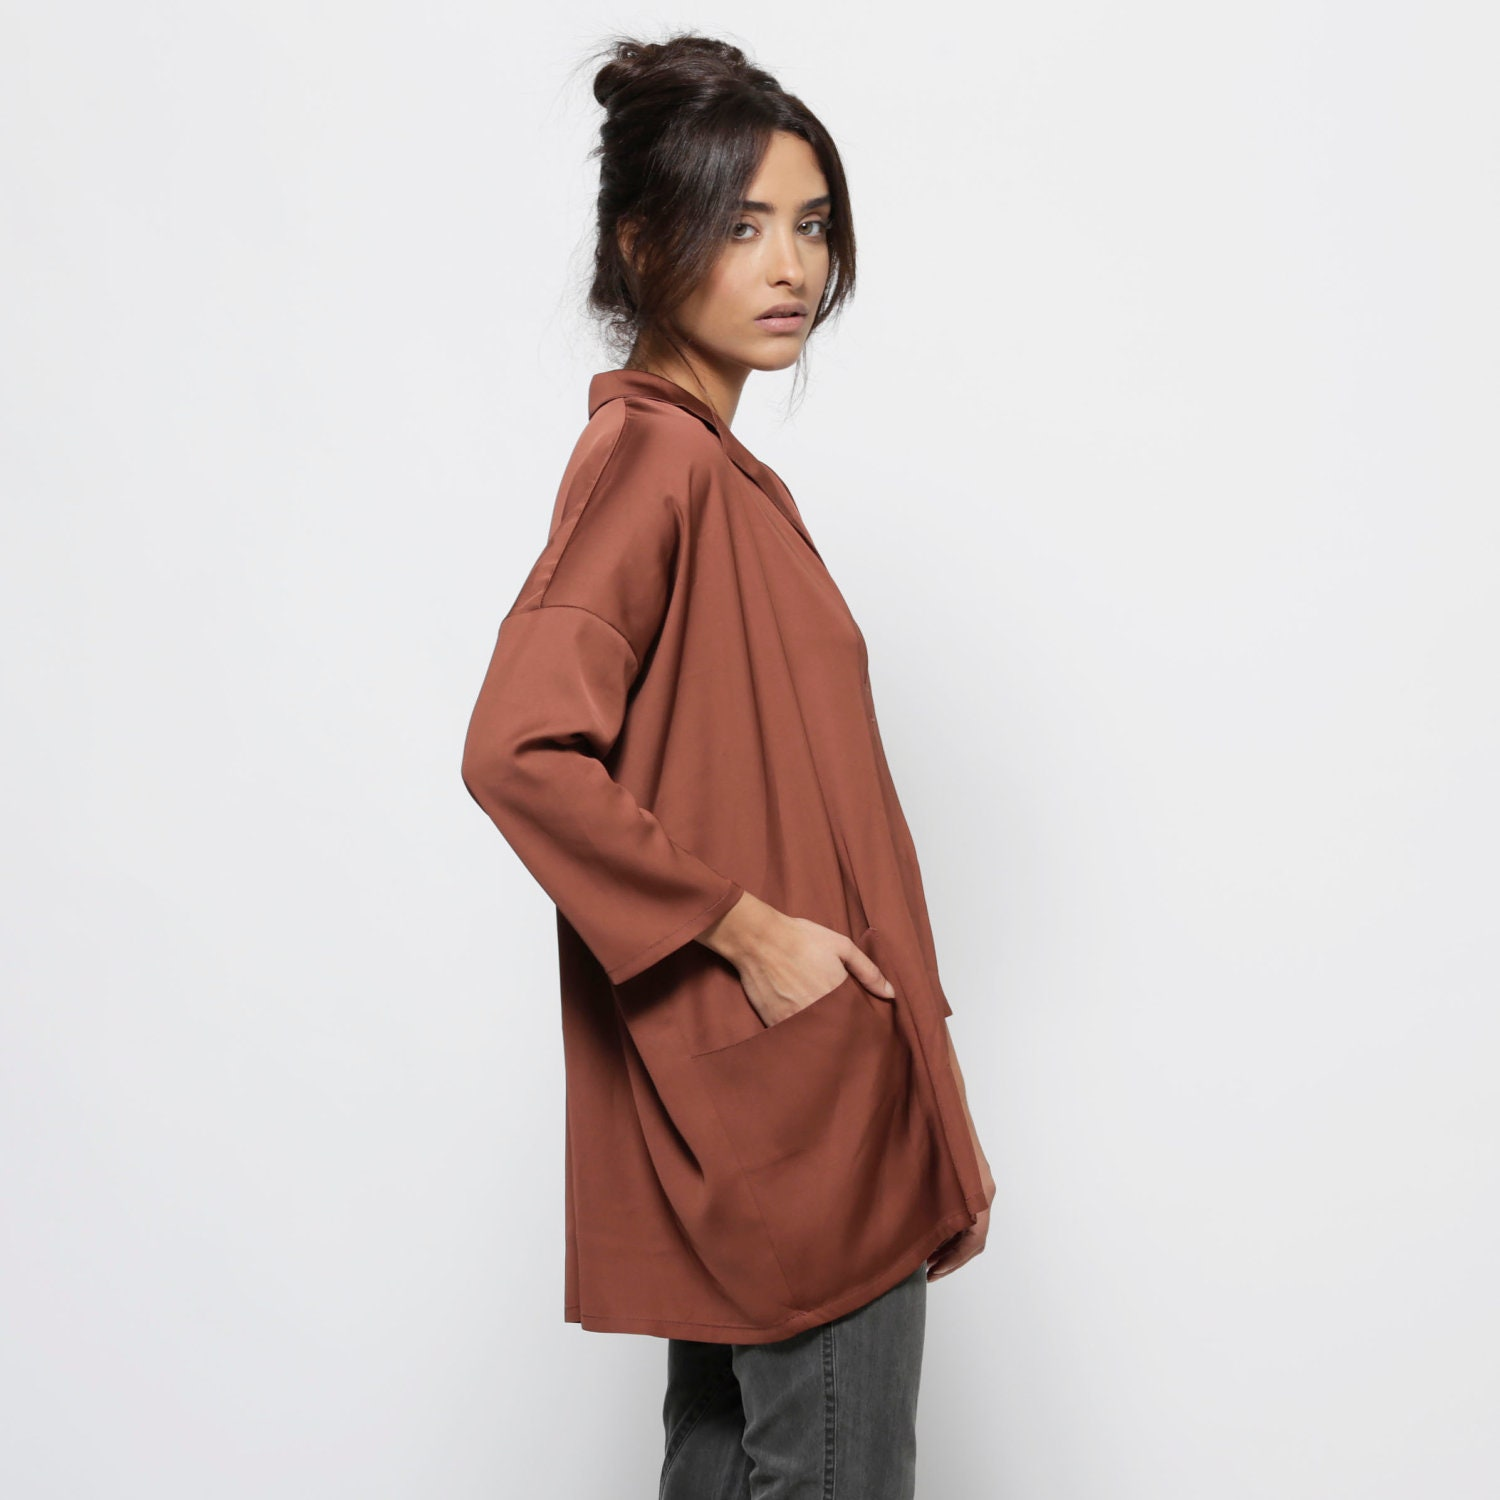 Brown oversize women top, bordo blouse, 3/4 sleeves - AndyVeEirn